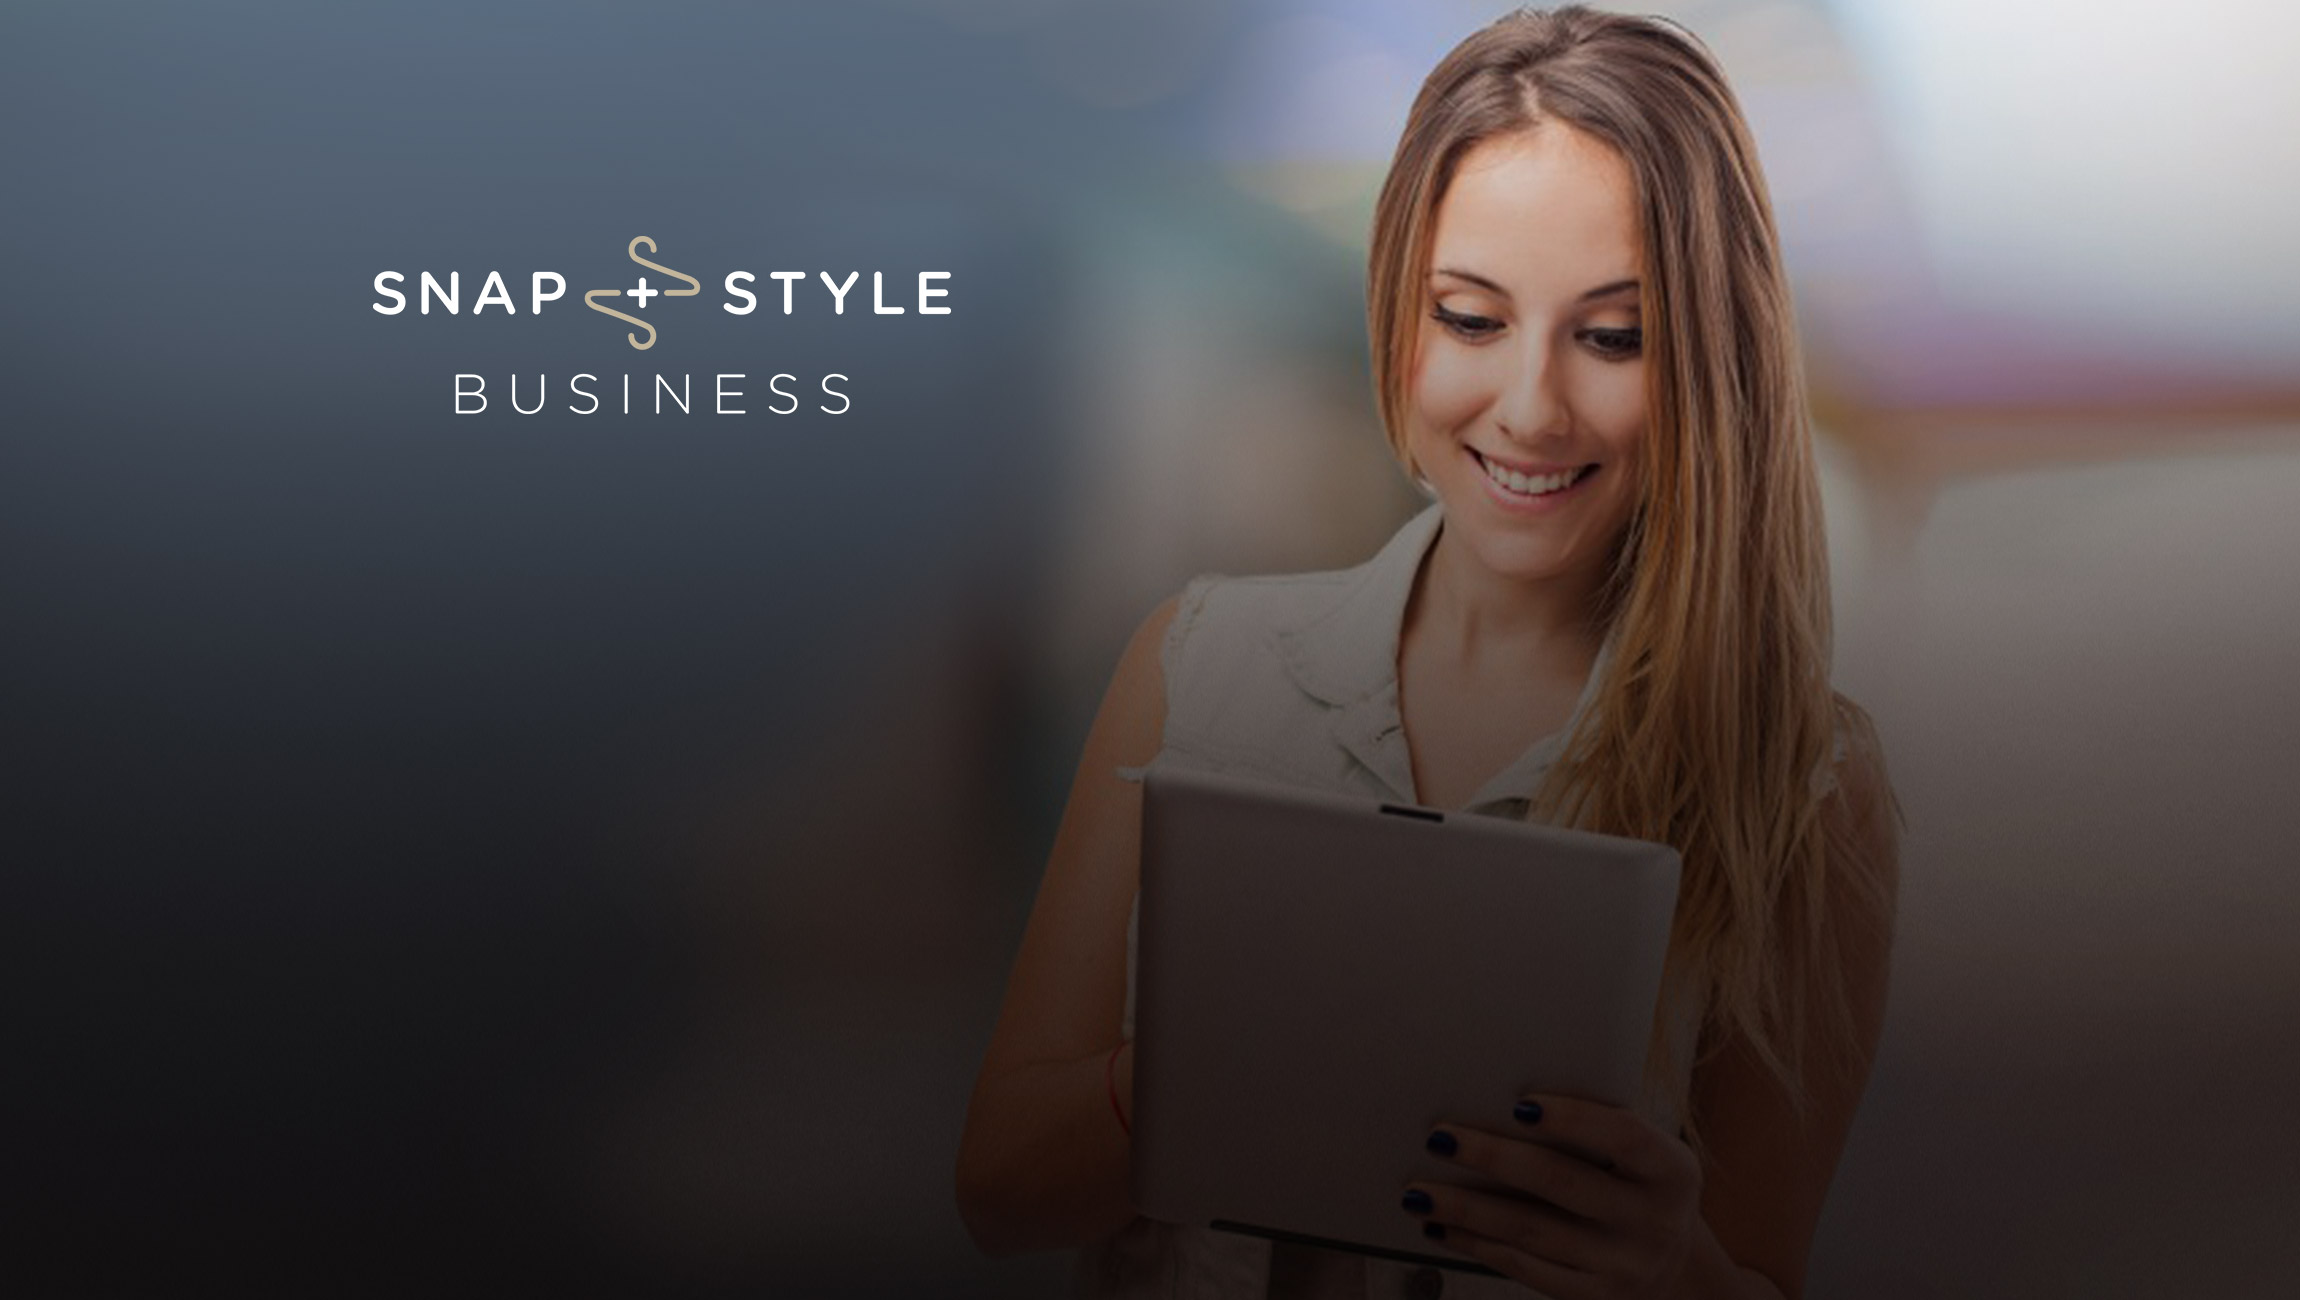 Next Generation Retailer Revolve And Snap+Style Business (S+SB) Collaborate On The Power Of Personalization And Curation In Online Shopping For Launch Of S+SB On Microsoft Azure